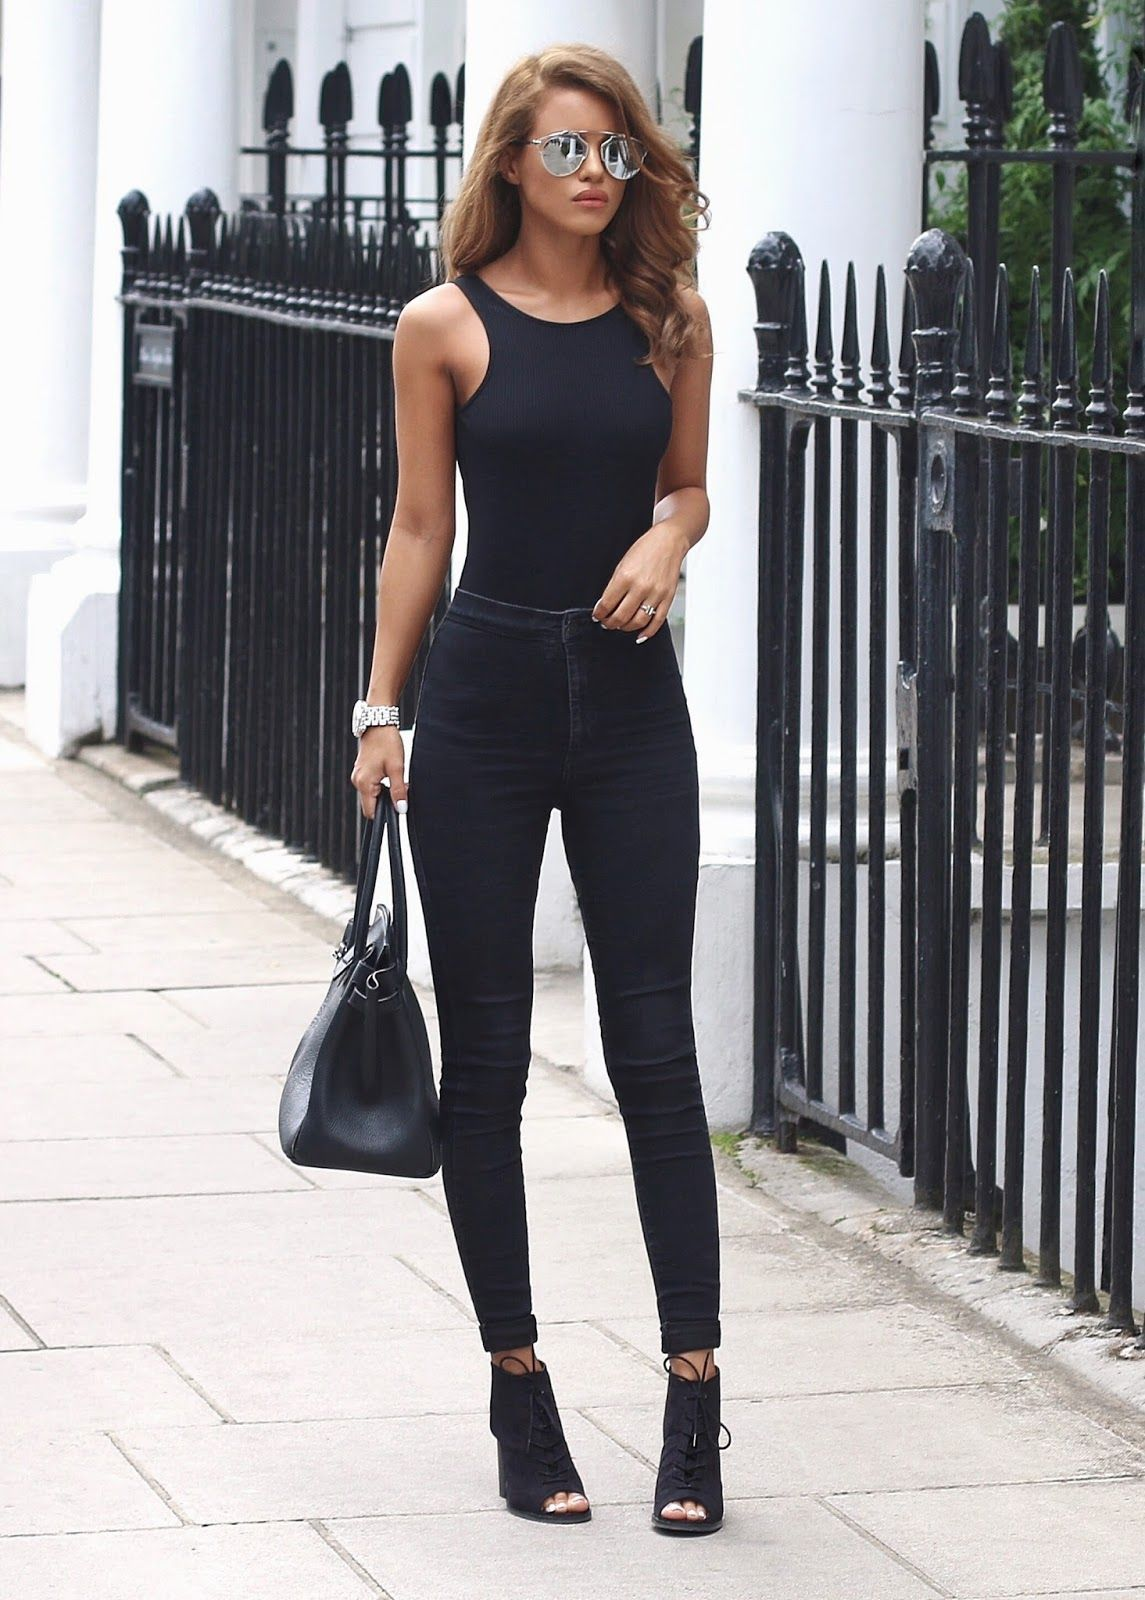 Lace bodysuit with high waisted jeans  Whatus Trending  Gorgeous Outfits On The Street  Pinterest